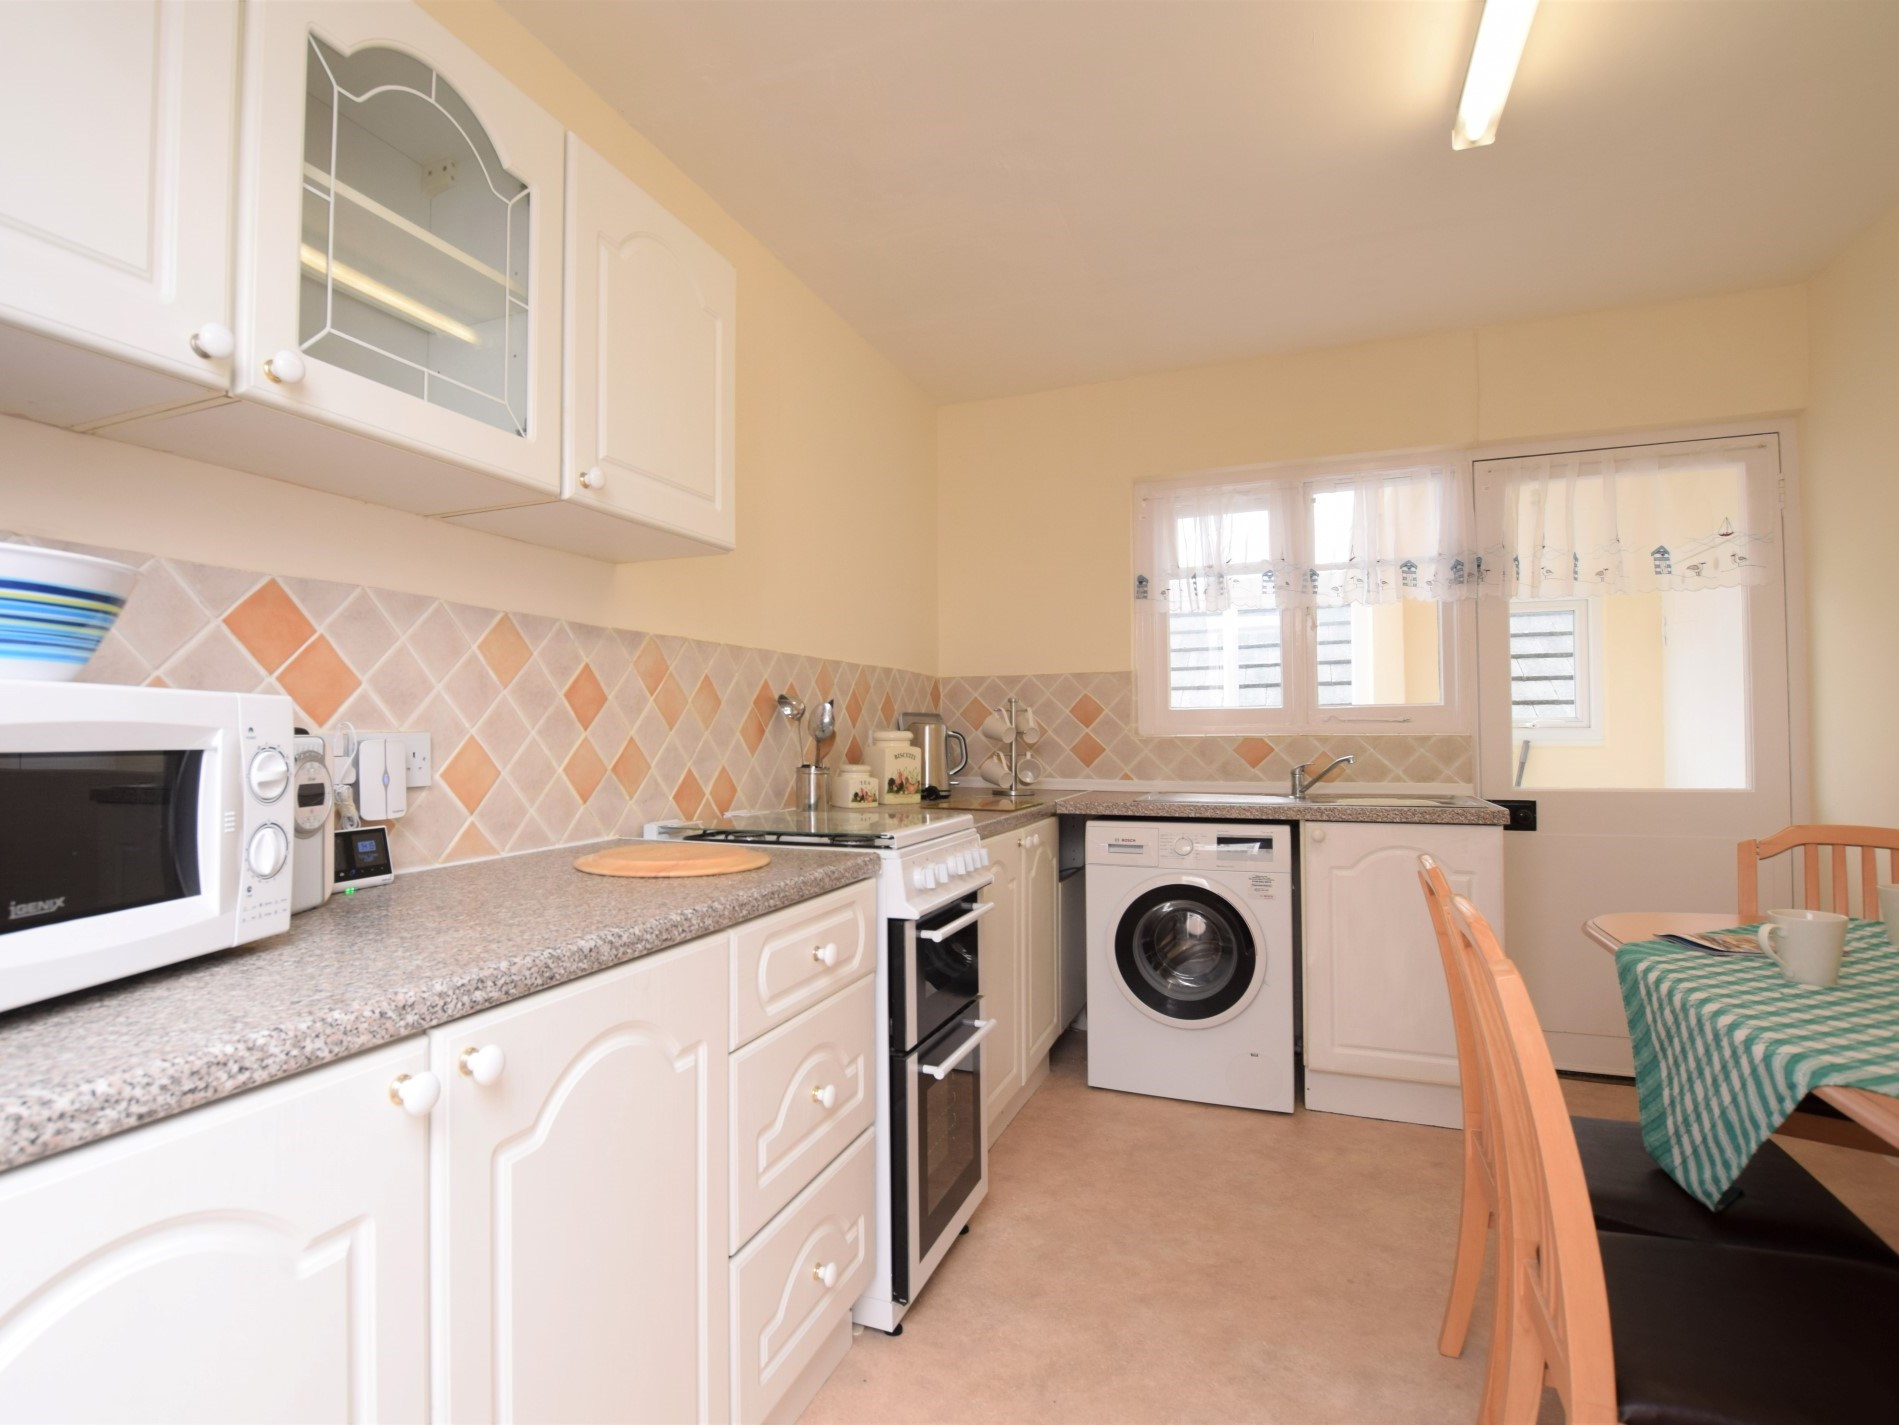 2 Bedroom Cottage in Bude, Cornwall